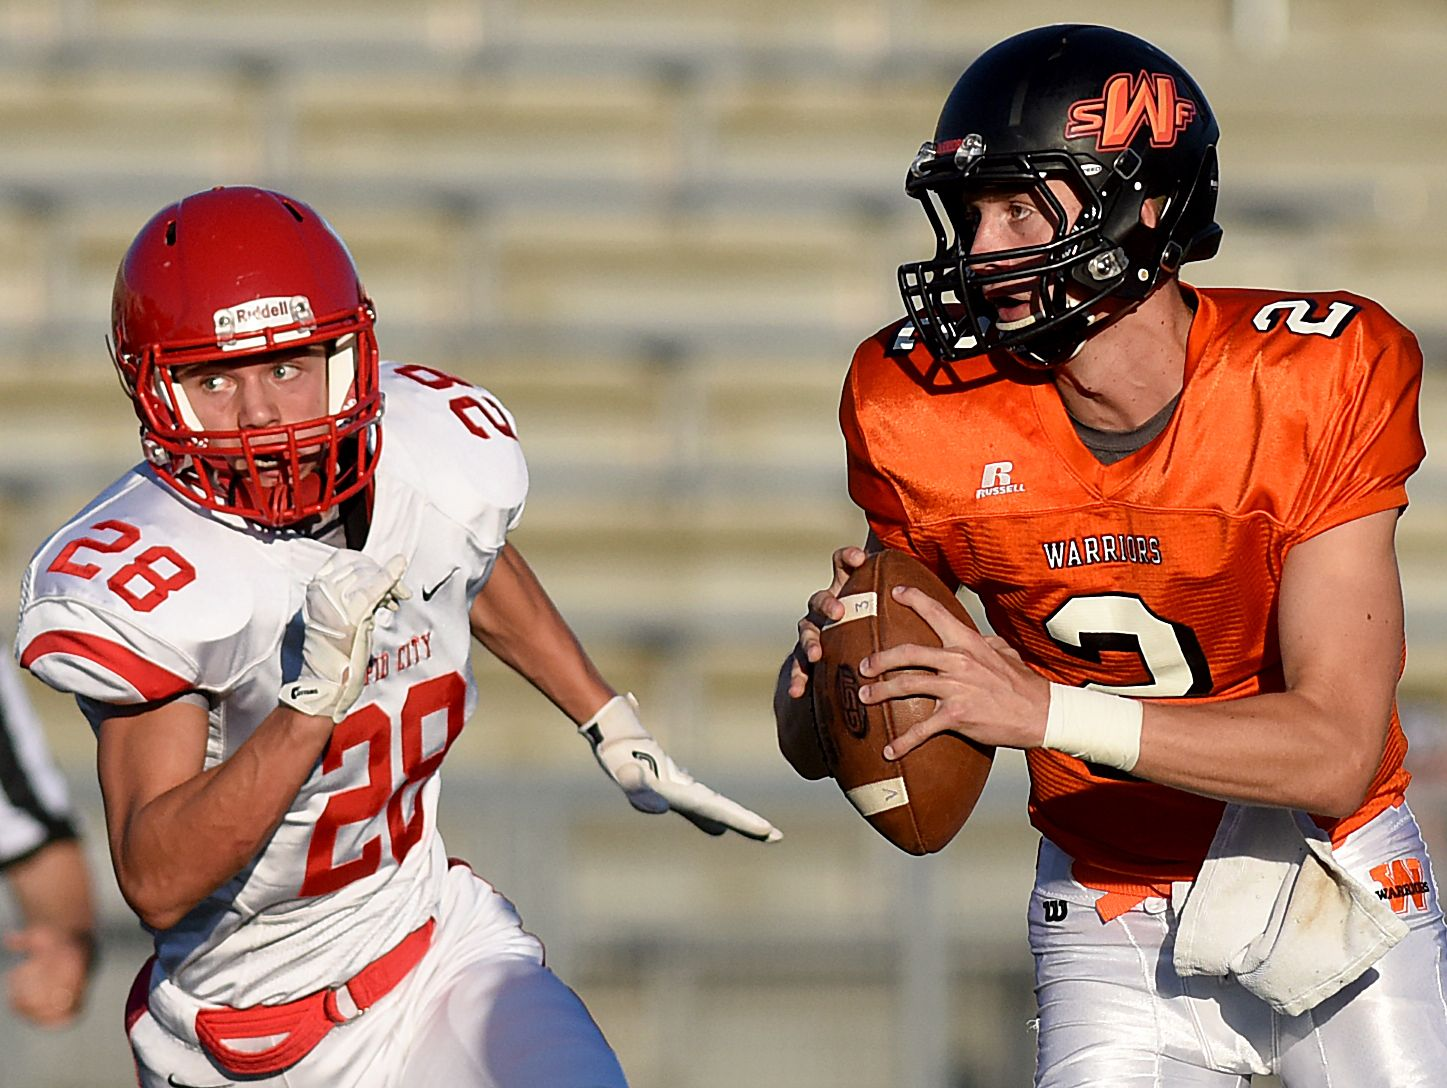 Washington's Jayden Johannsen looks to pass while Rapid City Central's Jordan Ladson chases after during their game on Friday at Howard Wood Field.